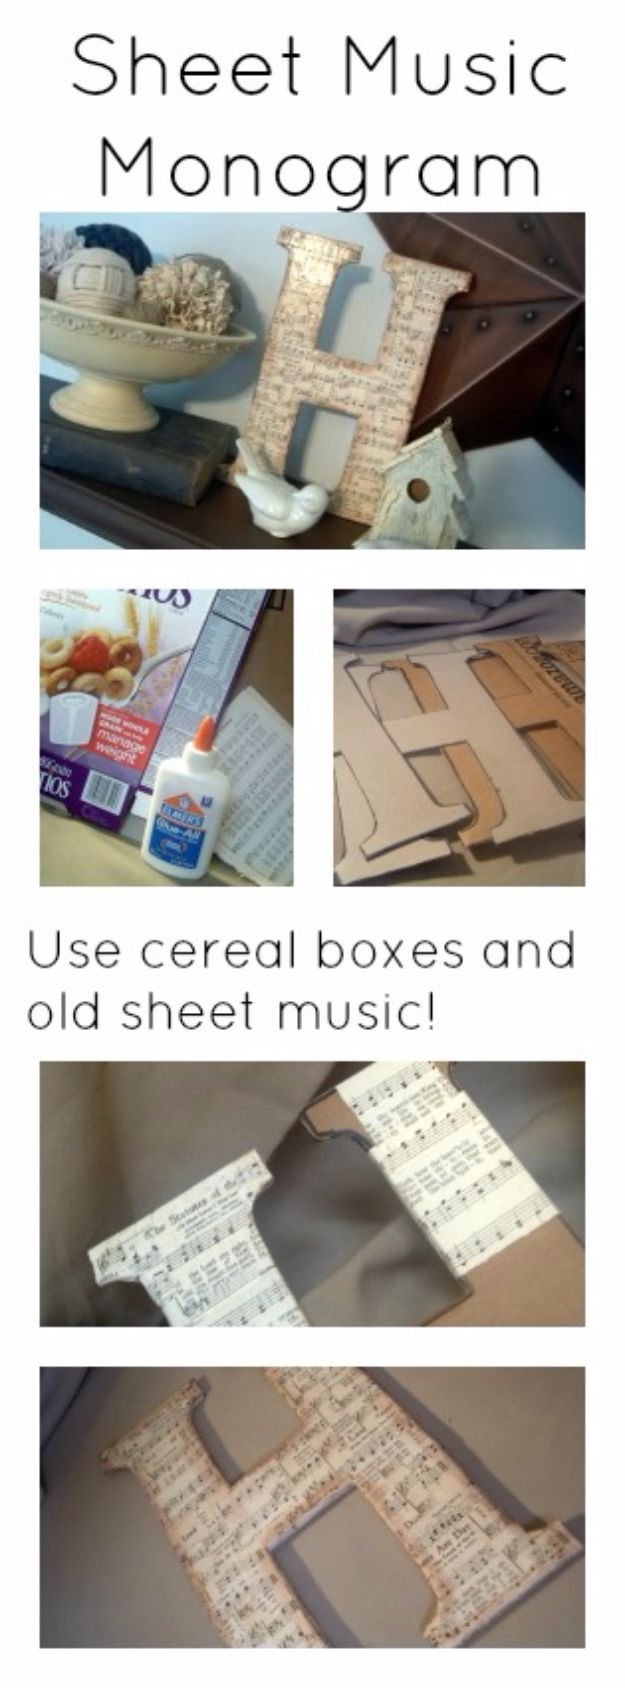 DIY Media Room Ideas - DIY Chipboard Monogram - Do It Yourslef TV Consoles, Wall Art, Sofas and Seating, Chairs, TV Stands, Remote Holders and Shelving Tutorials - Creative Furniture for Movie Rooms and Video Game Stations #mediaroom #diydecor